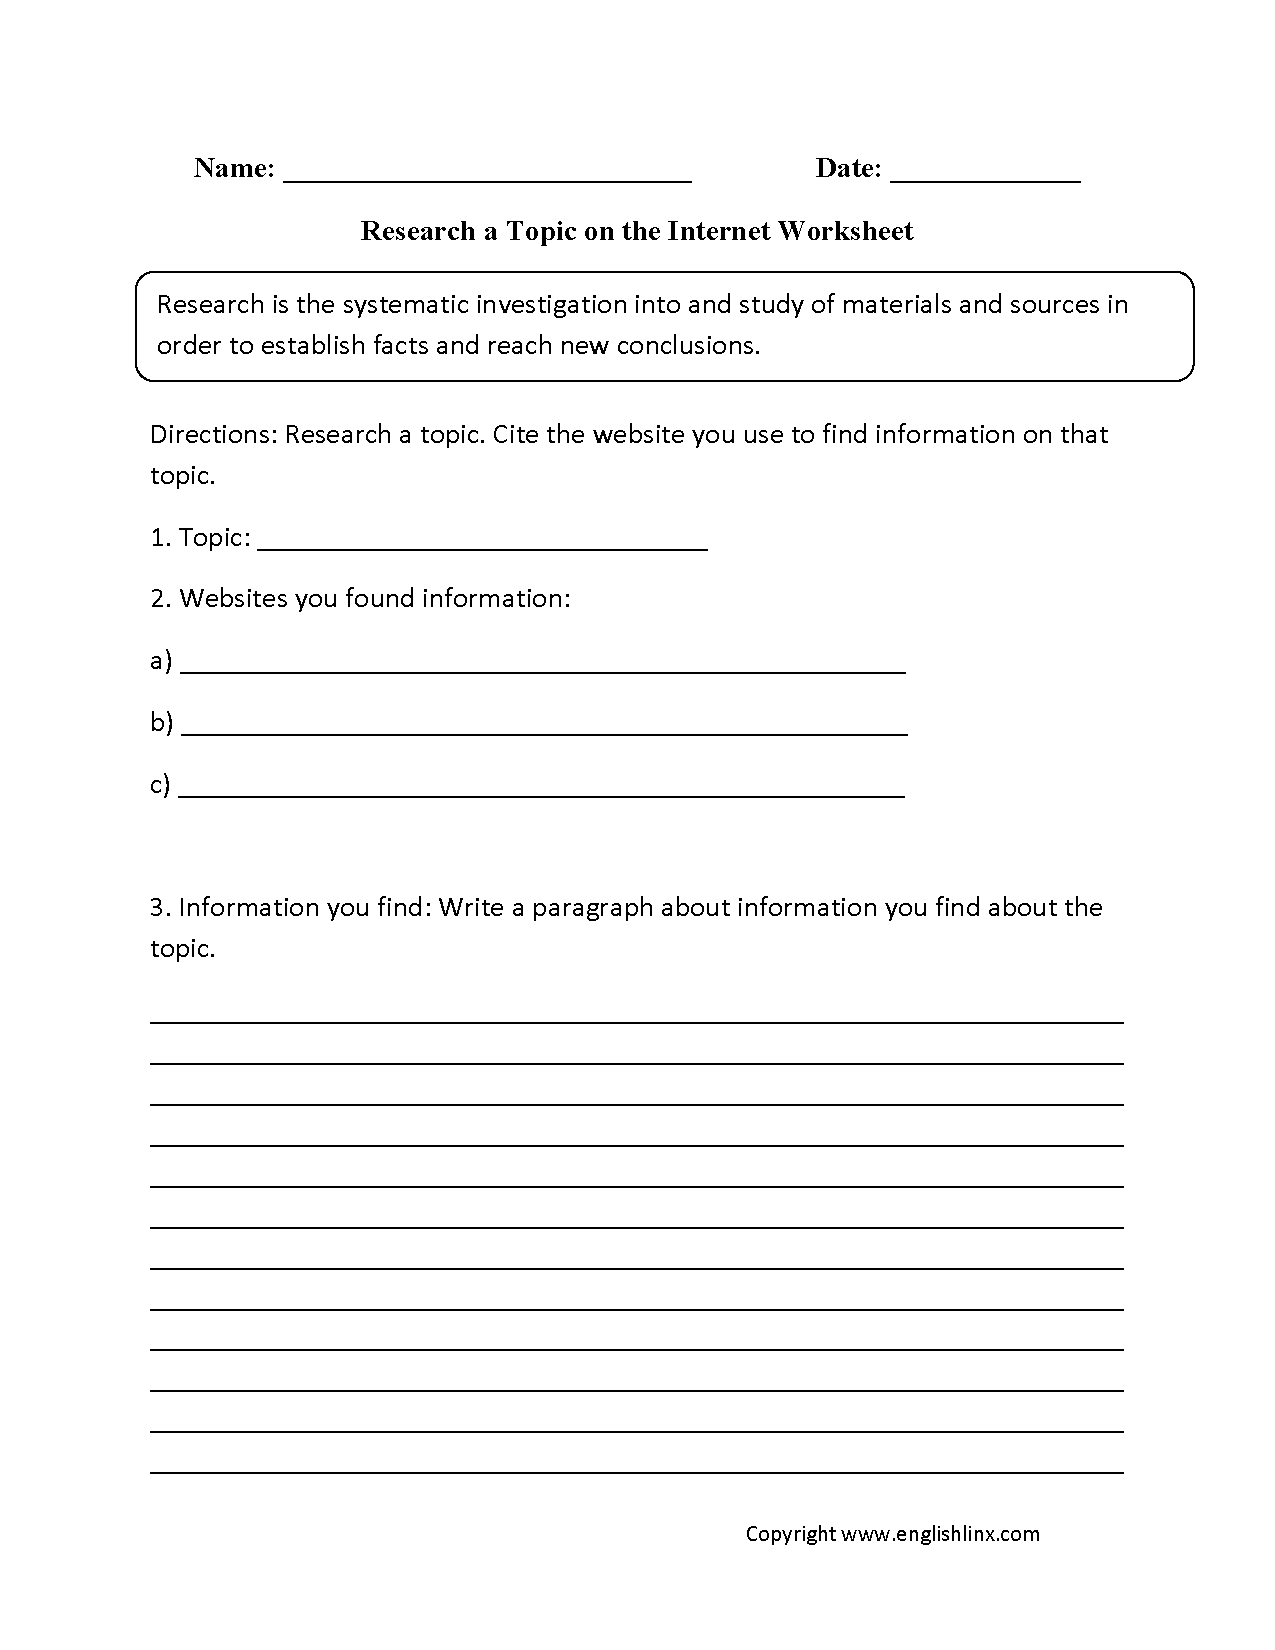 Aldiablosus  Scenic Englishlinxcom  Research Worksheets With Outstanding On The Internet Worksheet With Enchanting Number Sequences Worksheets Also  Digit Subtraction With Regrouping Word Problems Worksheets In Addition Worksheet For Algebraic Expressions And Proper Noun Worksheet Nd Grade As Well As More And Less Worksheet Additionally Nsw Foundation Handwriting Worksheets From Englishlinxcom With Aldiablosus  Outstanding Englishlinxcom  Research Worksheets With Enchanting On The Internet Worksheet And Scenic Number Sequences Worksheets Also  Digit Subtraction With Regrouping Word Problems Worksheets In Addition Worksheet For Algebraic Expressions From Englishlinxcom